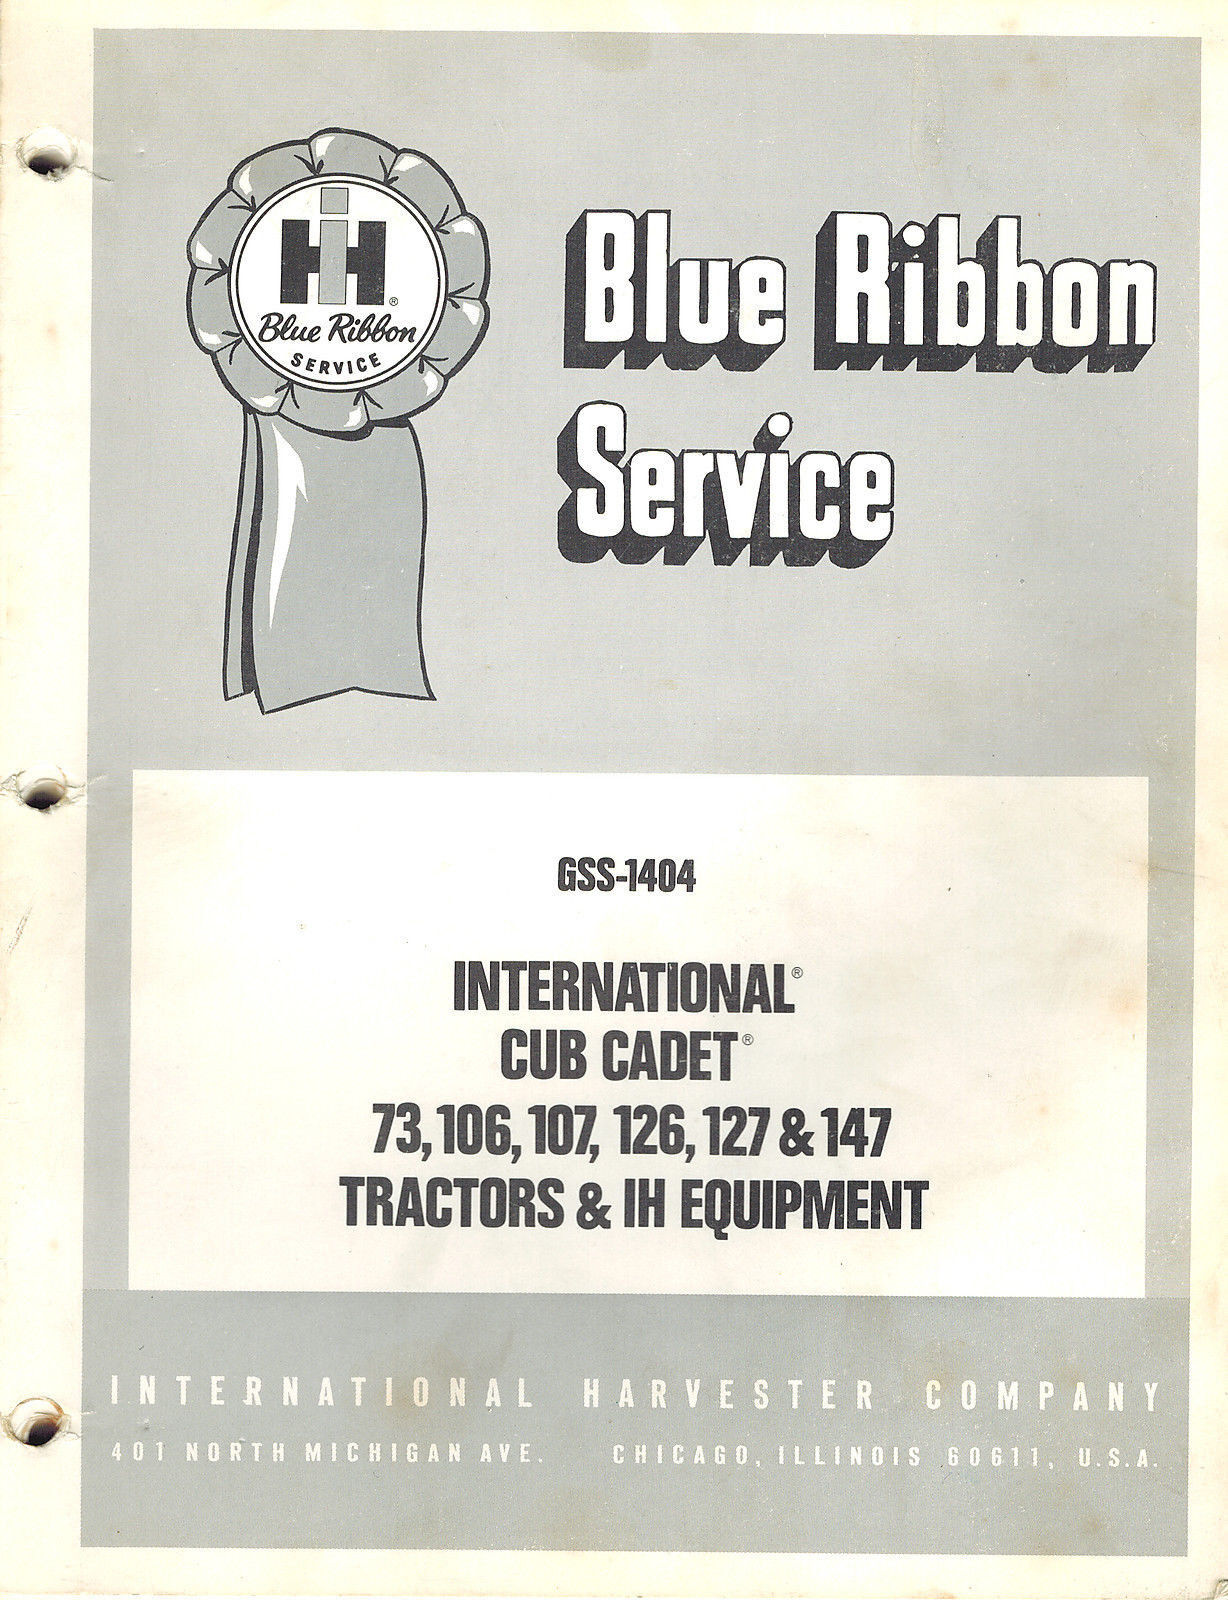 hight resolution of  of ih cub cadet d and d blue ribbon service manual uploaded by ppmurillo farmall ih genuine parts farm equipment signs implements tractors